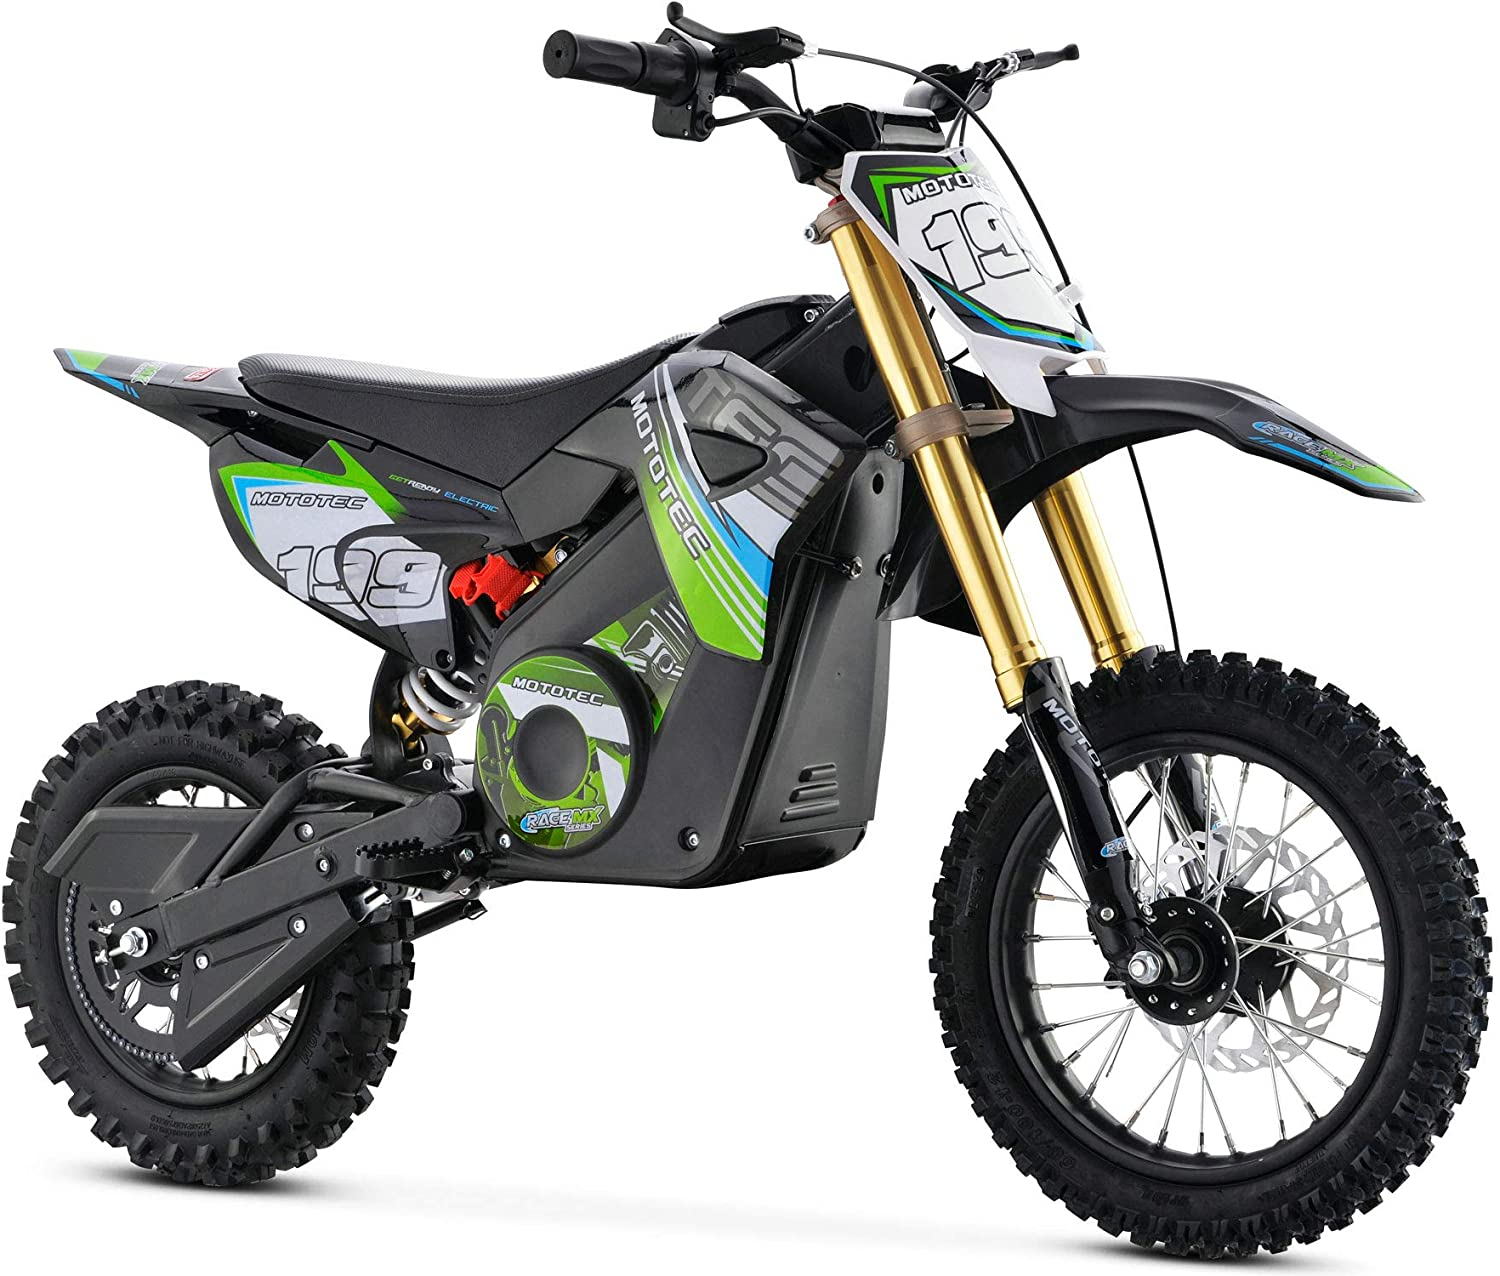 Top 12 Best Dirt Bike For Kids (2020 Reviews & Buying Guide) 9